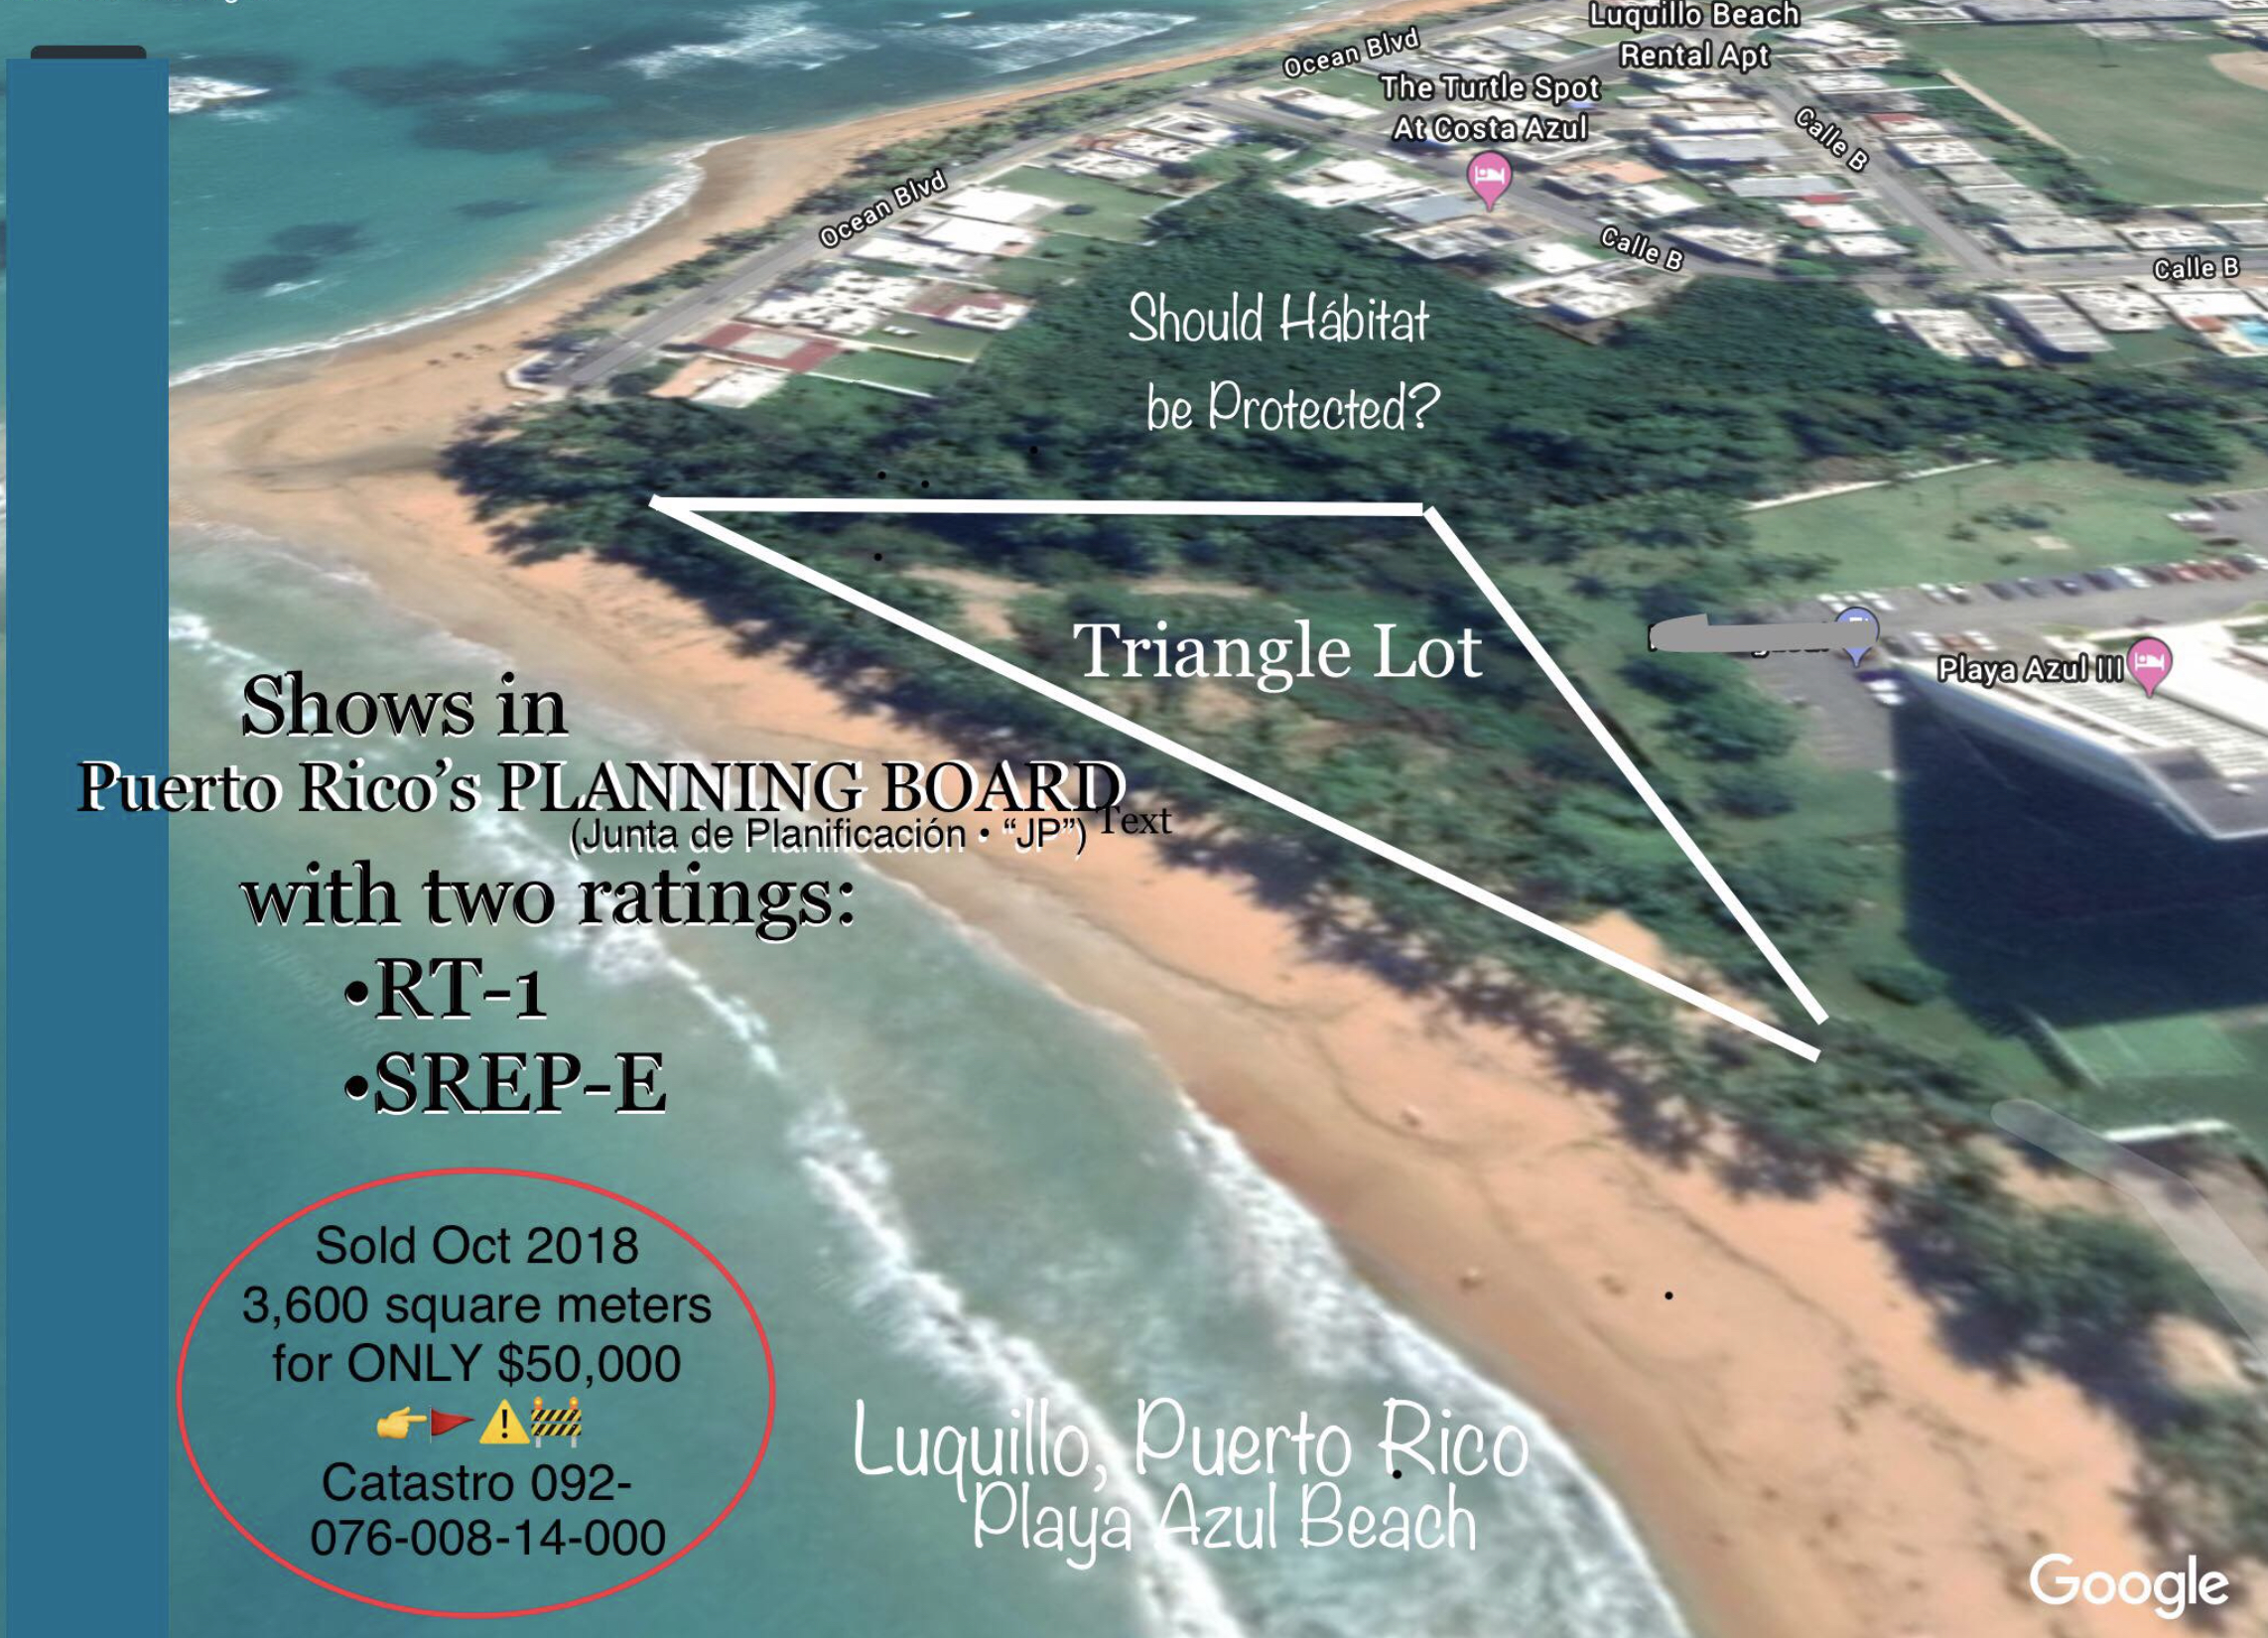 Aerial view of the area of proposed development in Luquillo, Puerto Rico. This is a turtle nesting ground and supports many small species.